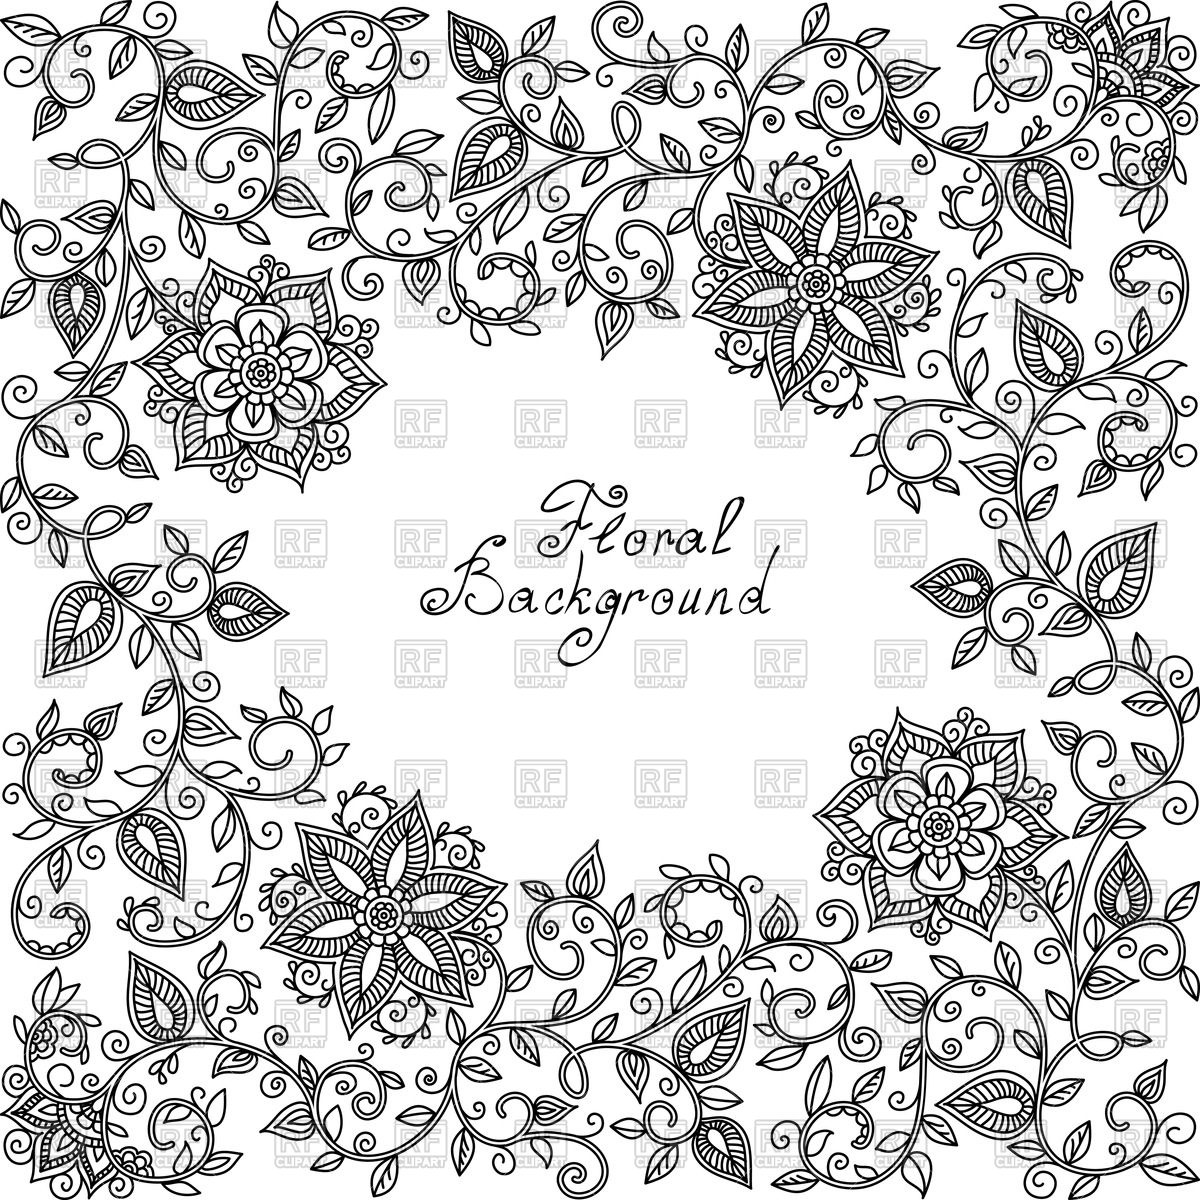 1200x1200 Black And White Floral Pattern Of Spirals And Swirls Vector Image